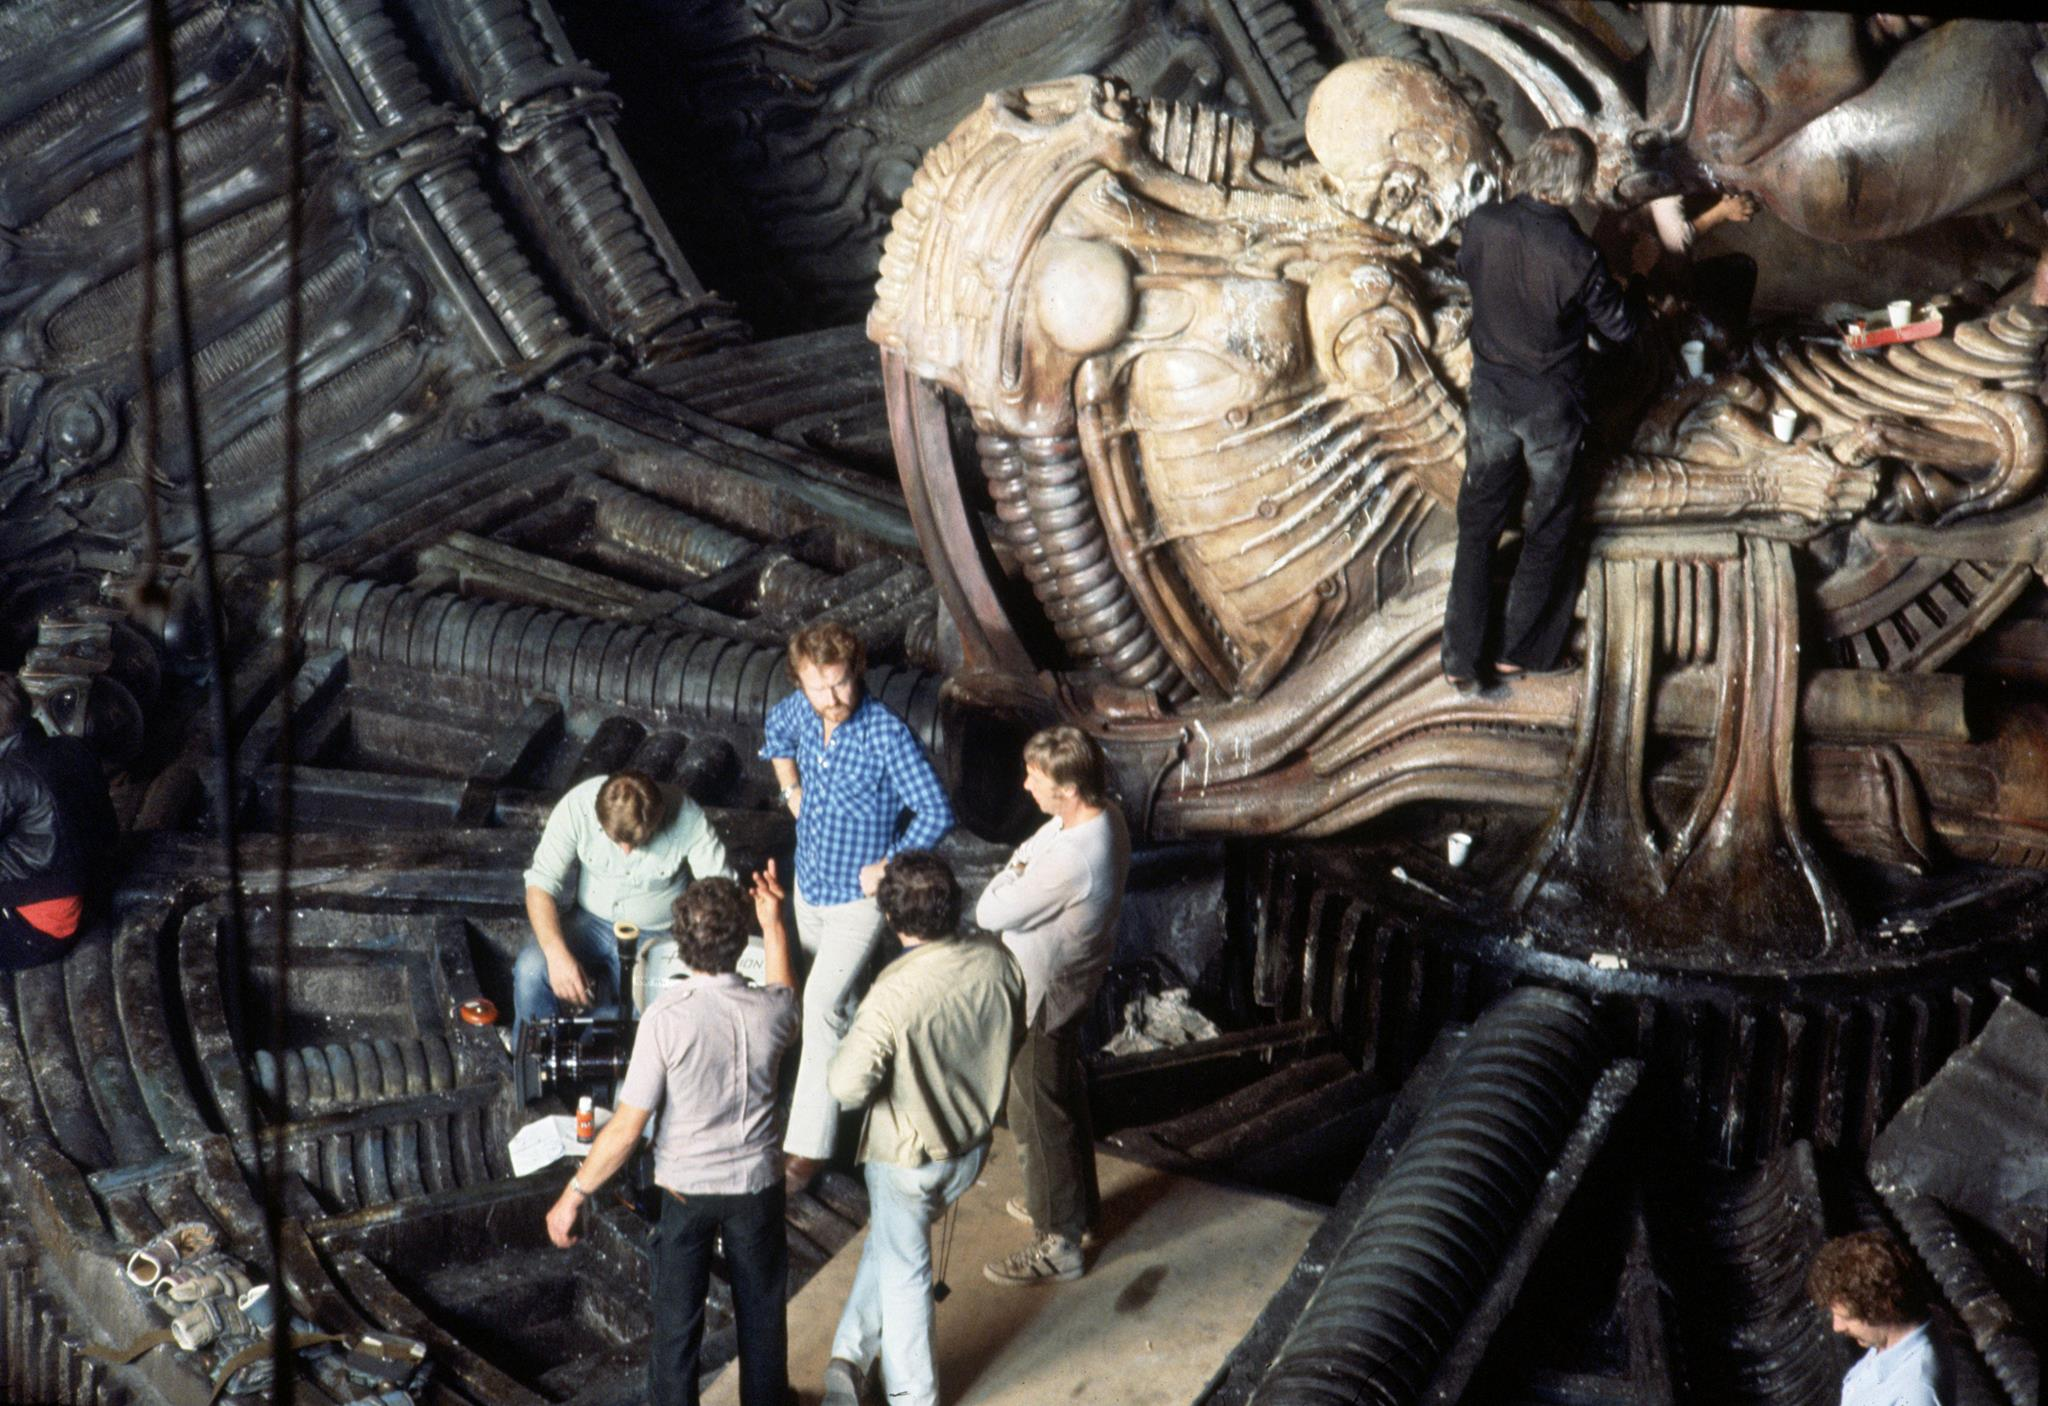 40 Years of Hurt, Face-Hugging Dreams of Breathing: Ridley Scott's 'Alien'